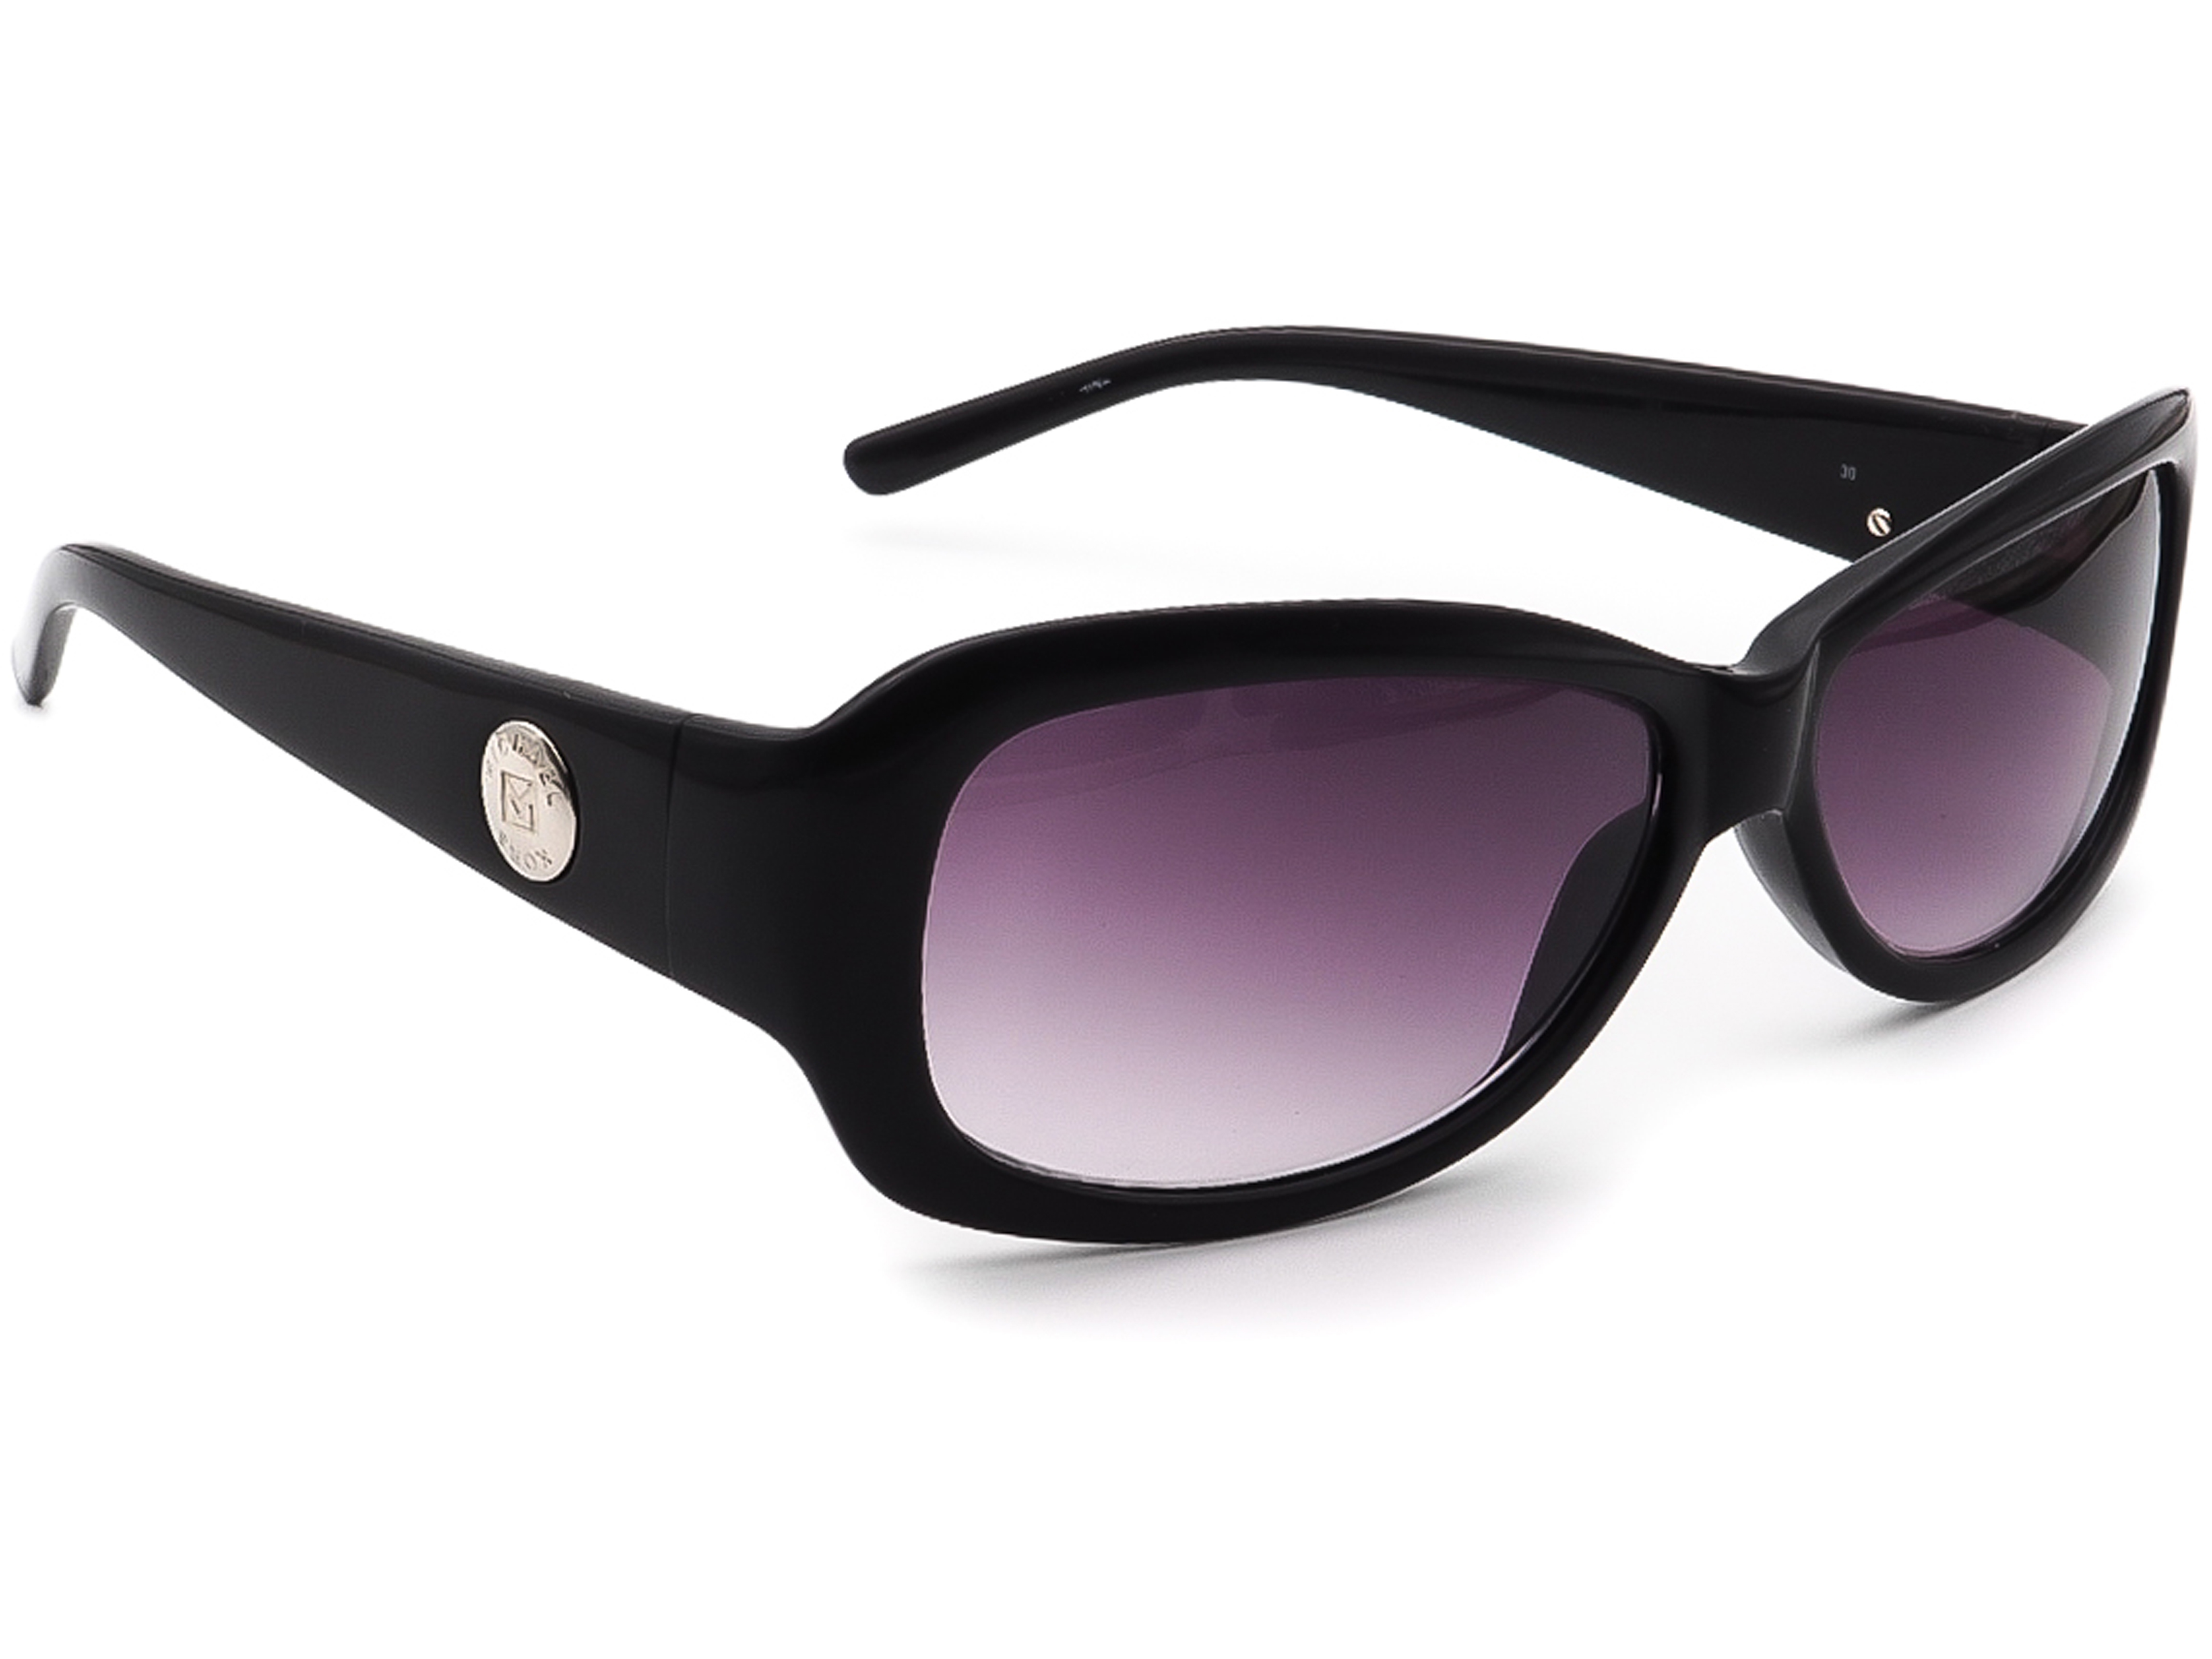 Michael Kors M3600S  307 Sunglasses